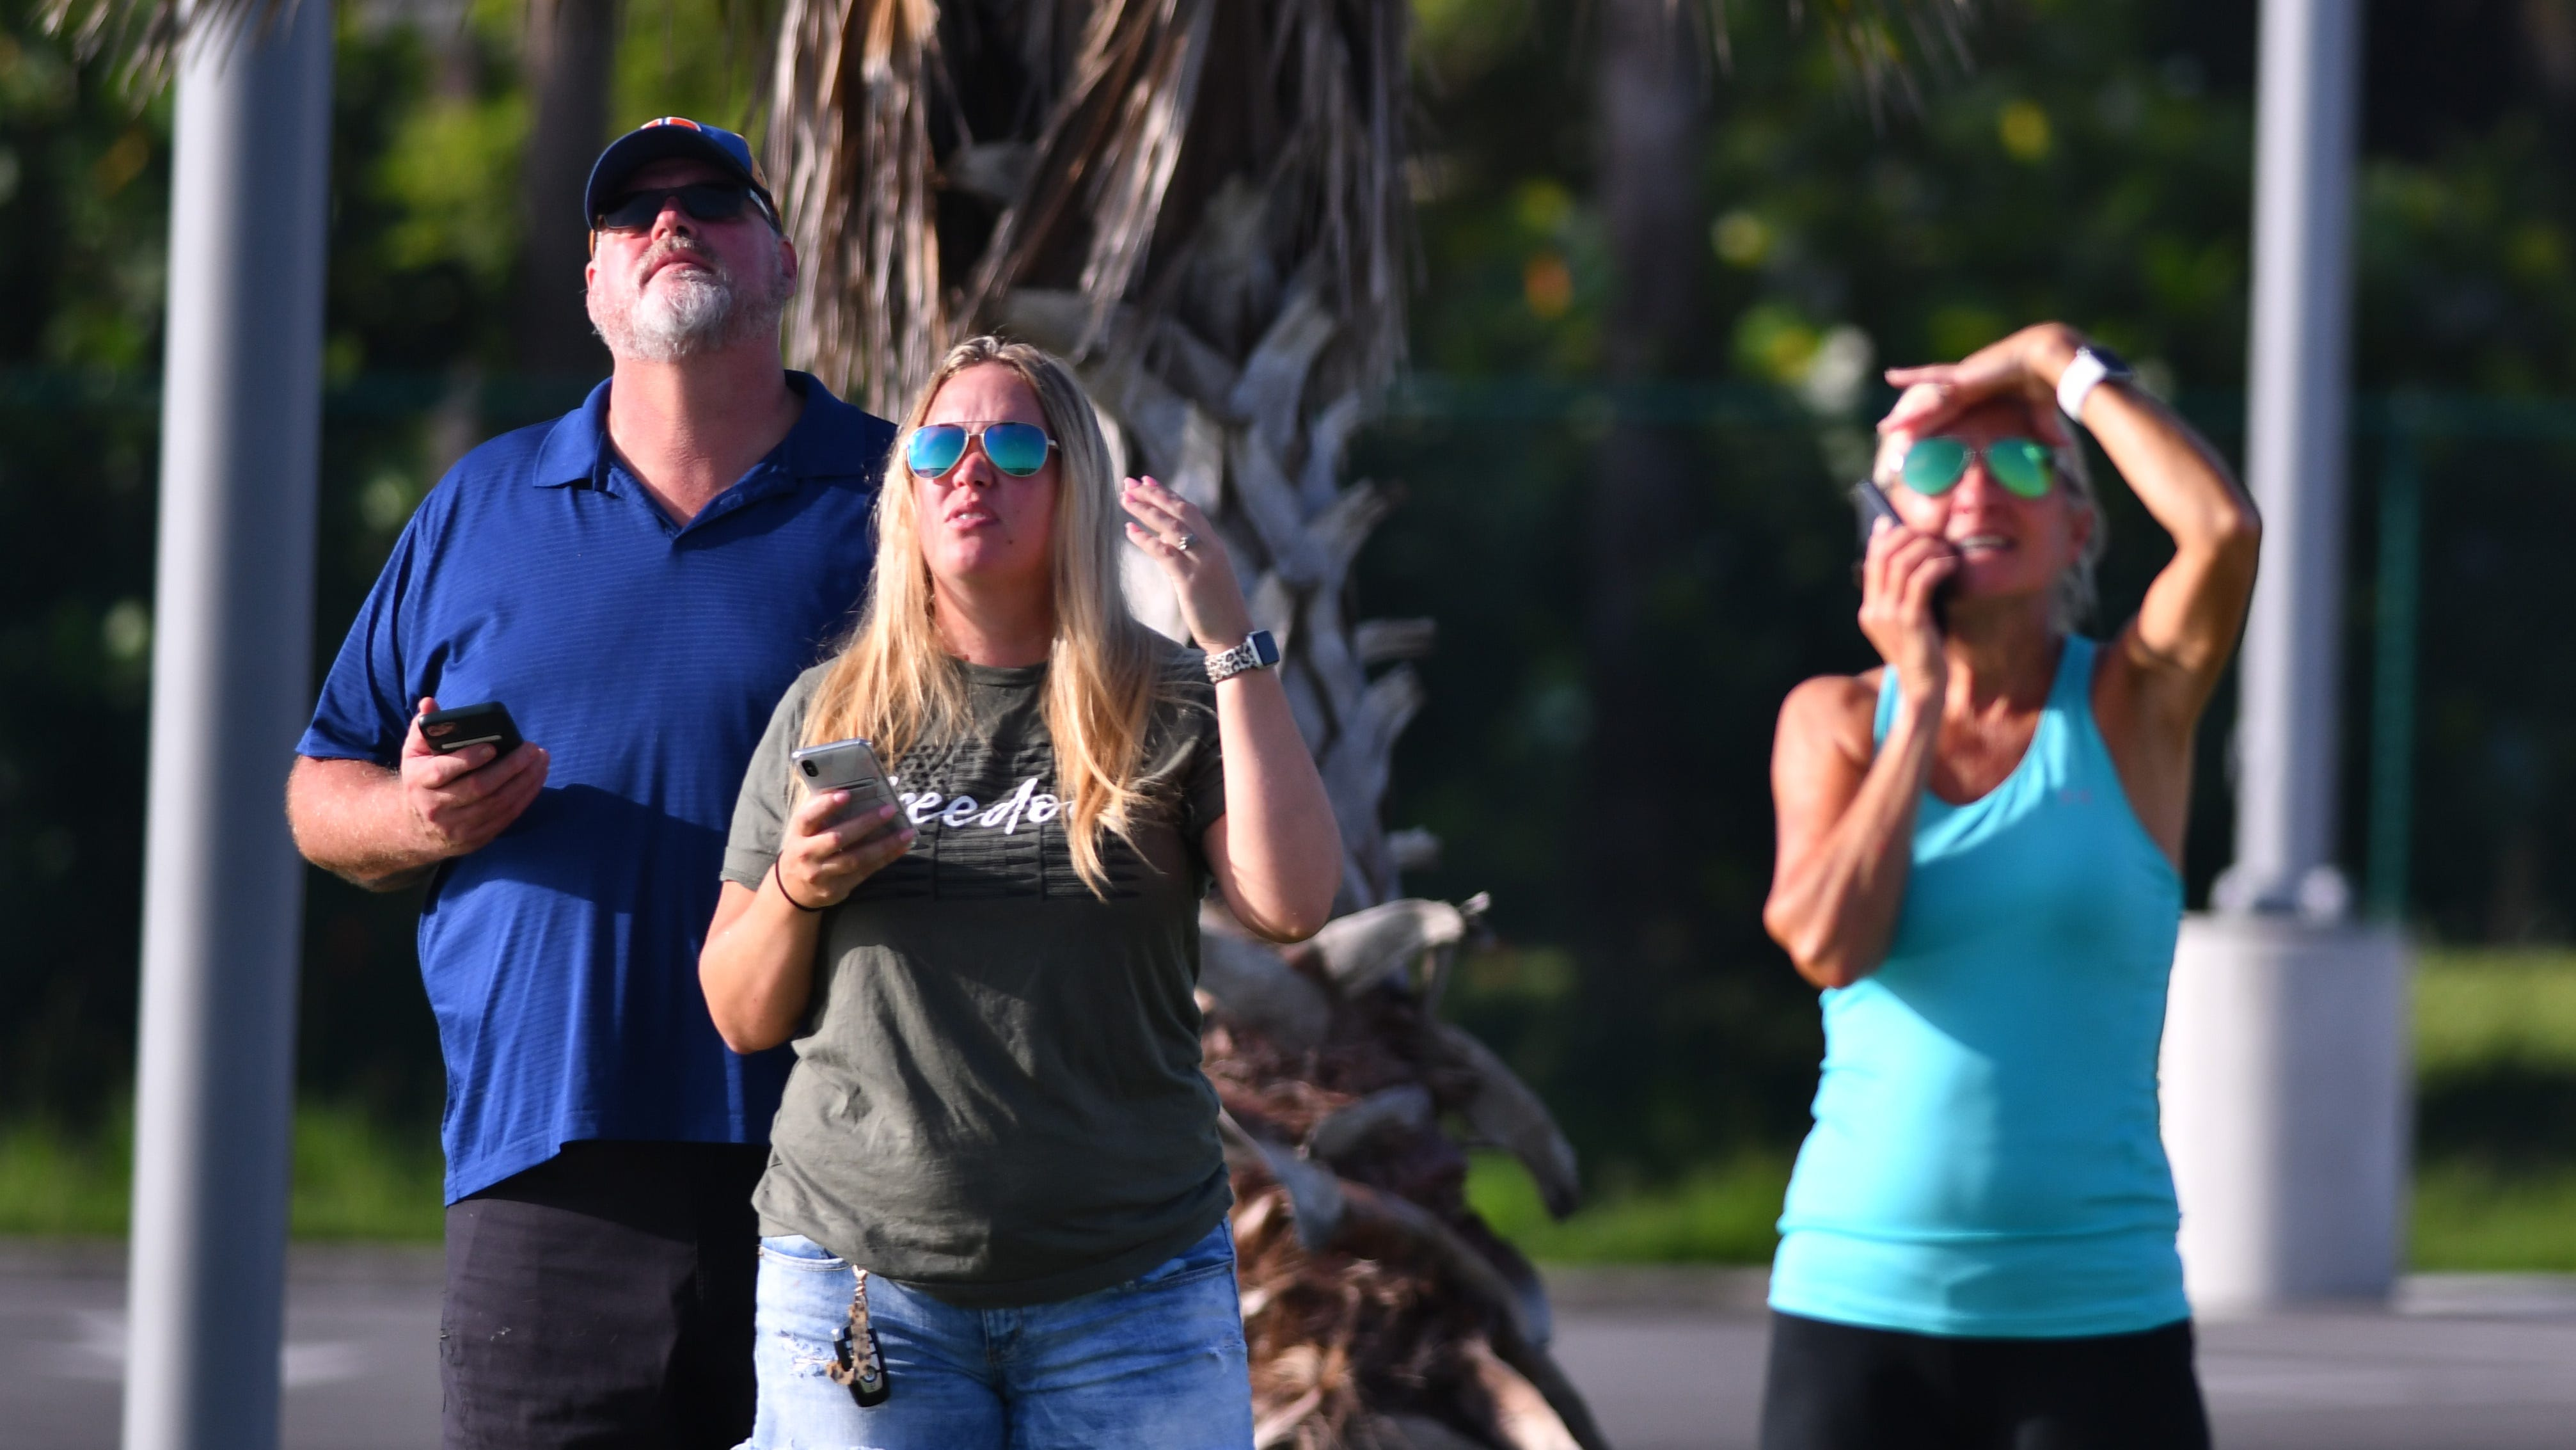 Spectators at the Freddie Patrick Boat Ramps at Port Canaveral had a close up view of the  SpaceX launch of a Falcon 9 rocket from Kennedy Space Center's pad 39A with its 12th batch of 60 Starlink internet satellites  launched at 8:46 a.m. Thursday morning.